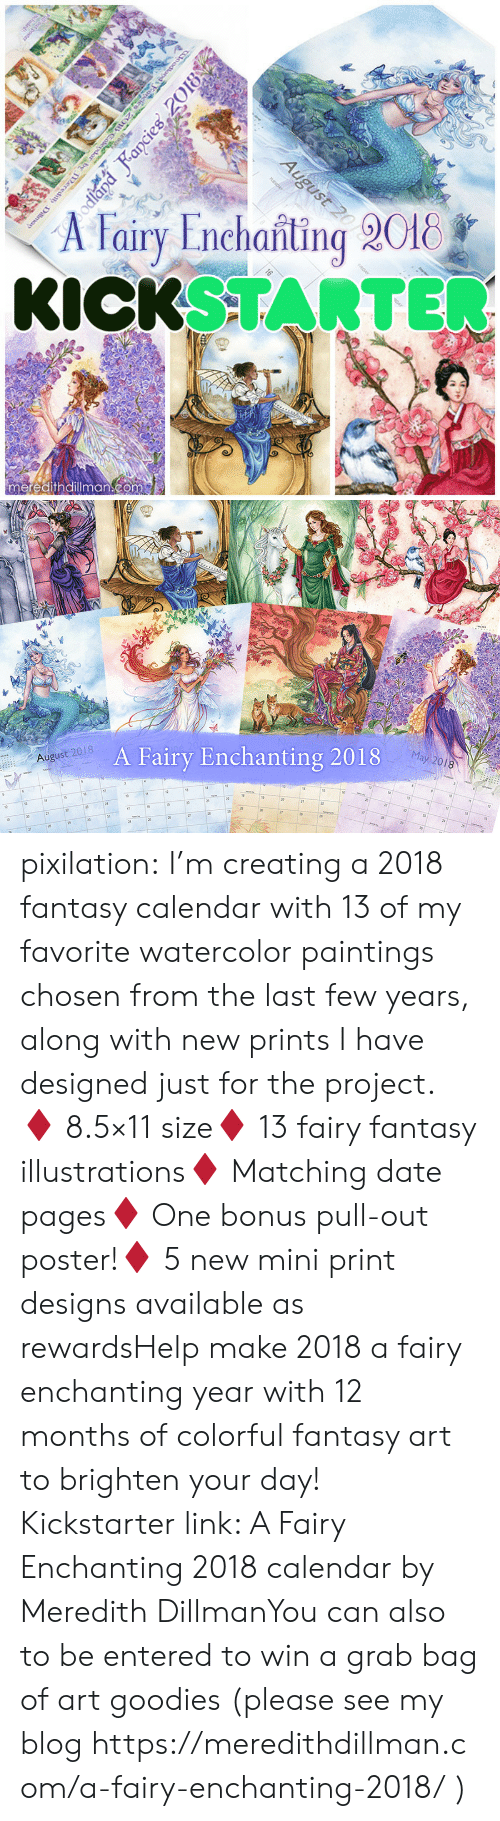 last-few-years: A Fairy Enchanting 2018  KICKSTARTE  meredithdillmancom   August 2018  A Fairy Enchanting 2018  May 2018  13  21 pixilation: I'm creating a 2018 fantasy calendar with 13 of my favorite watercolor paintings chosen from the last few years, along with new prints I have designed just for the project. ♦ 8.5×11 size♦ 13 fairy  fantasy illustrations♦ Matching date pages♦ One bonus pull-out poster!♦ 5 new mini print designs available as rewardsHelp make 2018 a fairy enchanting year with 12 months of colorful fantasy art to brighten your day! Kickstarter link: A Fairy Enchanting 2018 calendar by Meredith DillmanYou can also to be entered to win a grab bag of art goodies (please see my blog https://meredithdillman.com/a-fairy-enchanting-2018/ )